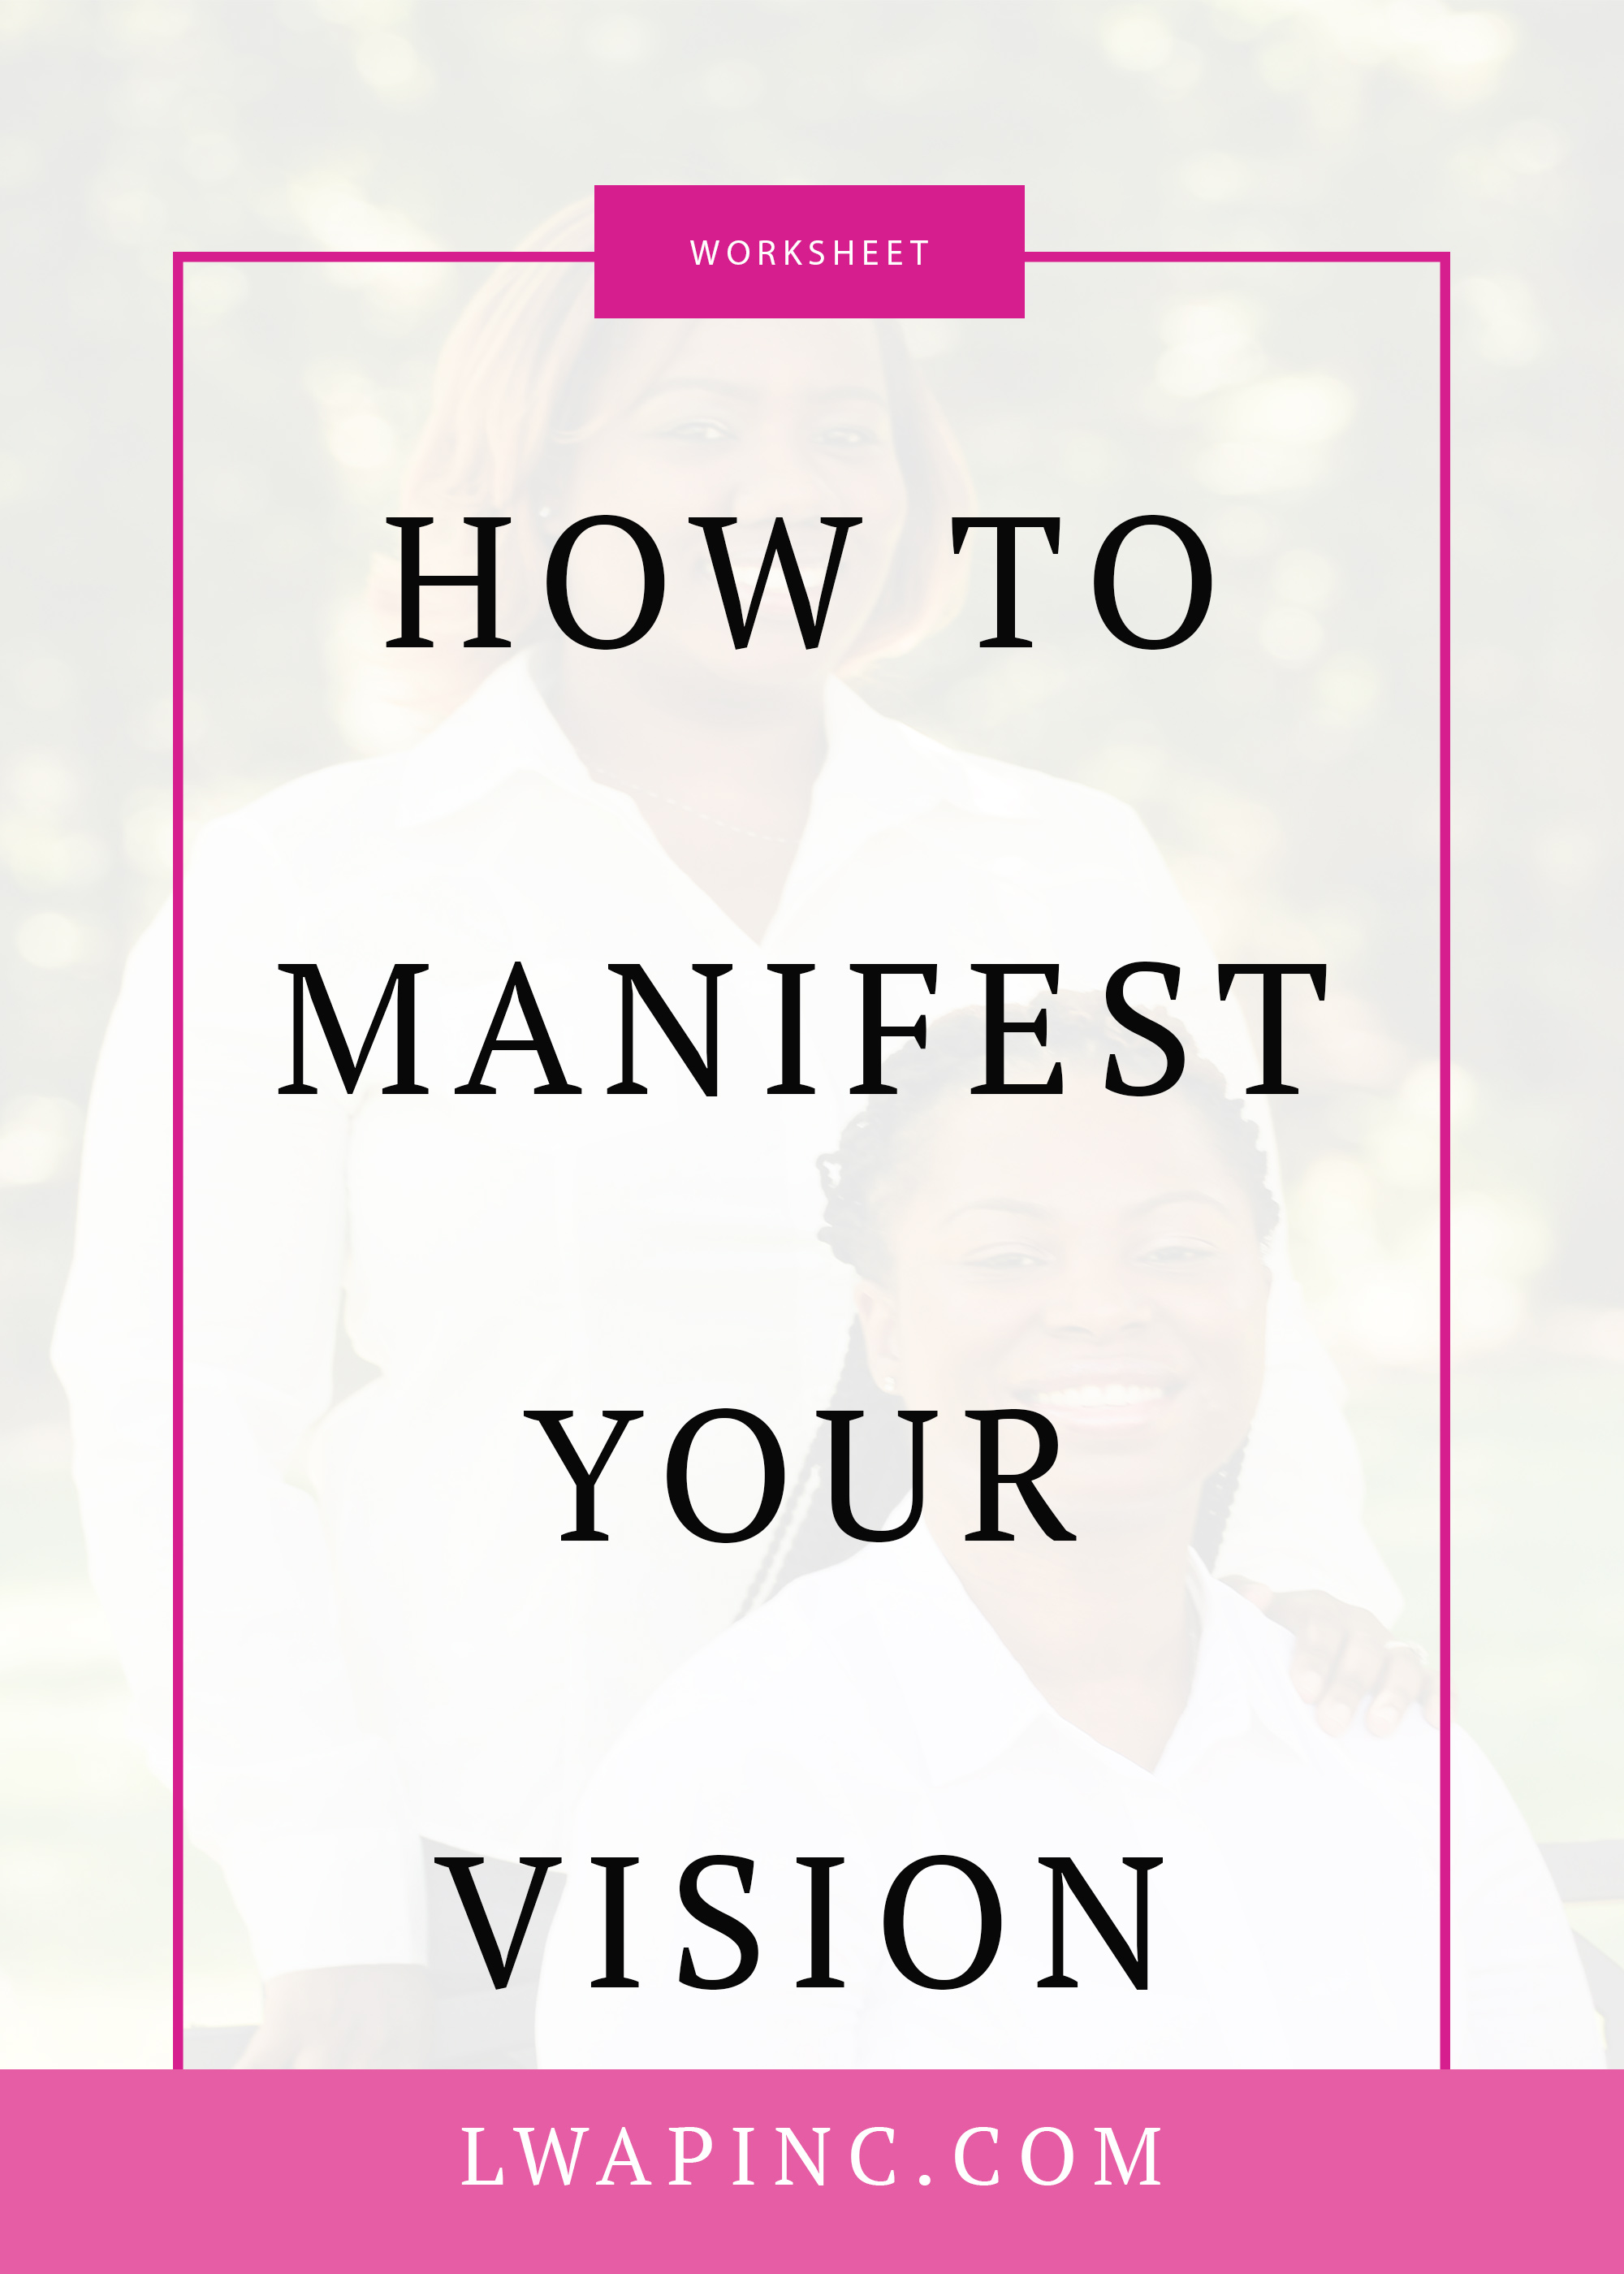 Manifest your vison worksheet.jpg